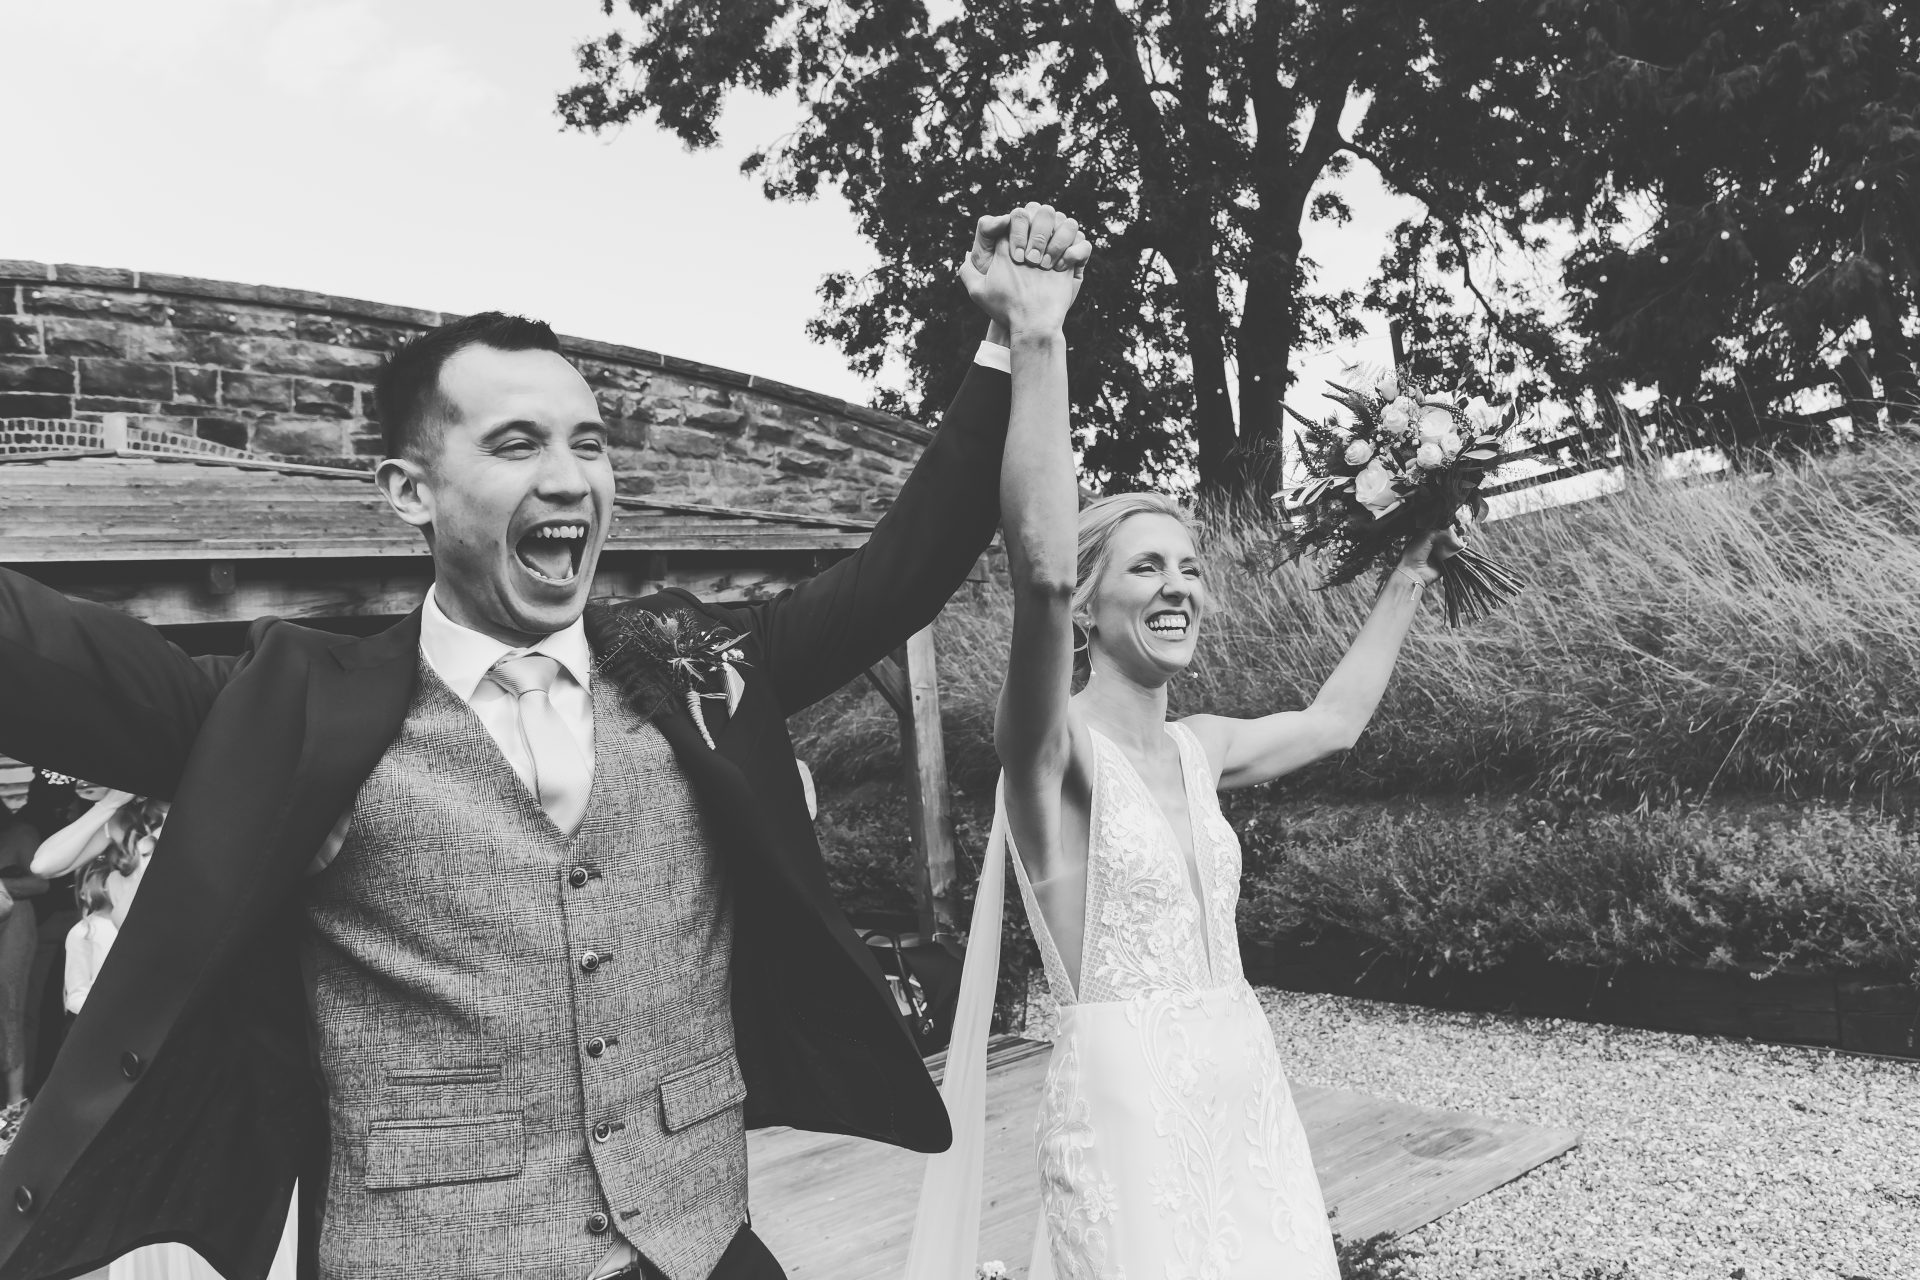 Bride and groom celebrating getting married